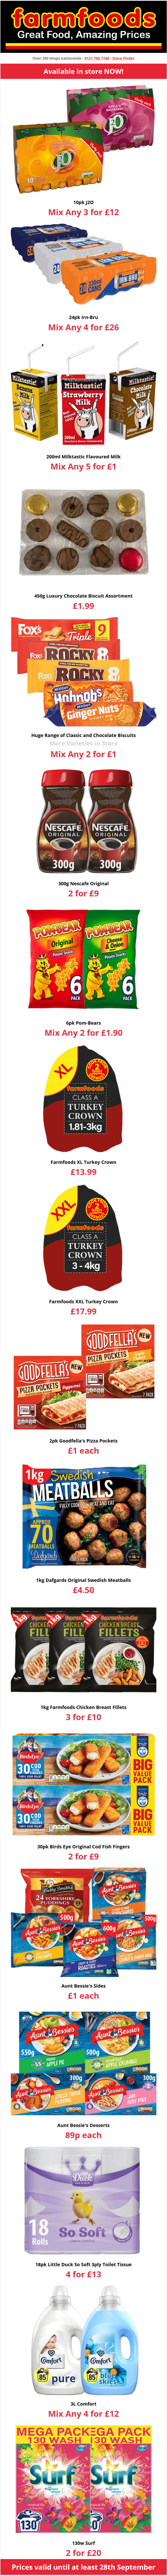 Farmfoods Offers at least until 28th September 2021